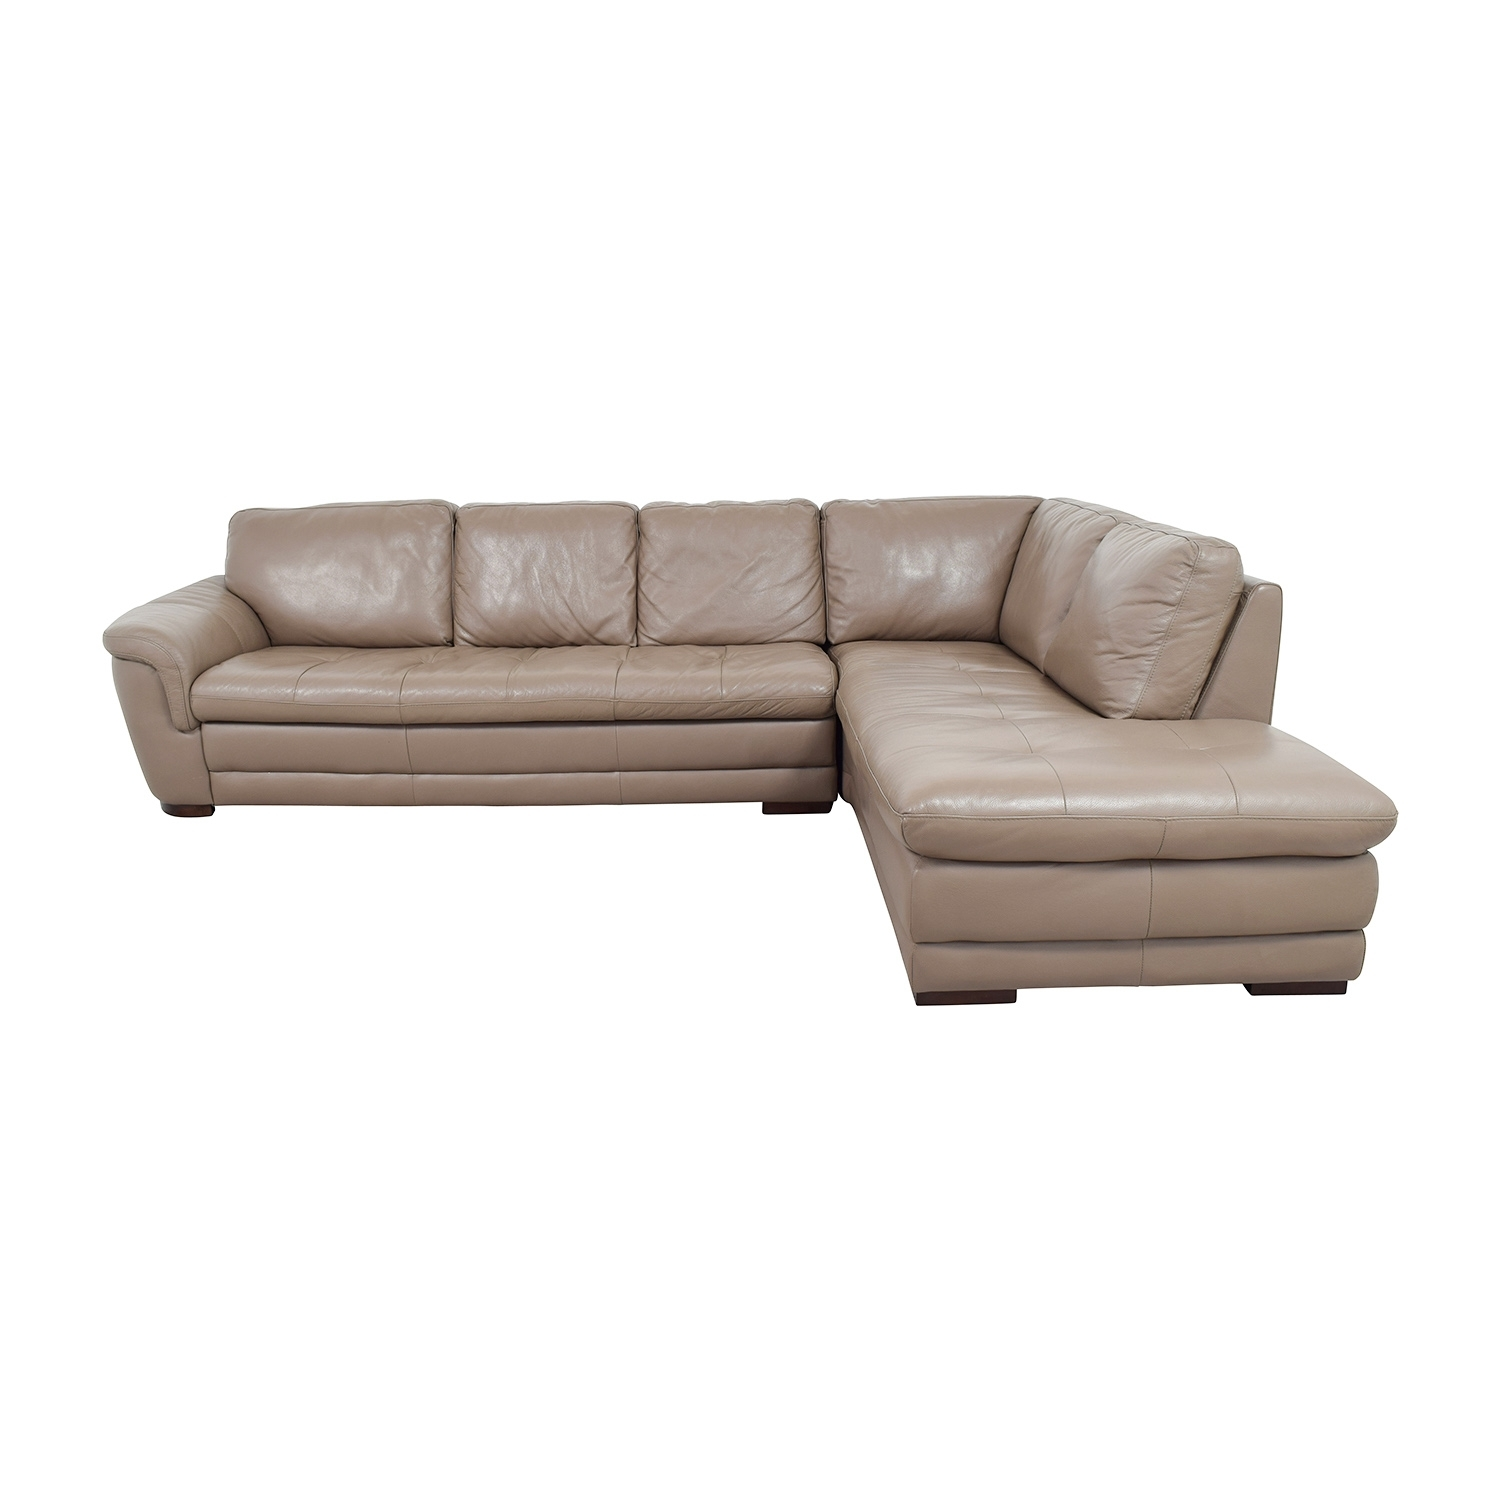 74% Off – Raymour And Flanigan Raymour & Flanigan Tan Tufted Leather Throughout Sectional Sofas At Raymour And Flanigan (View 5 of 15)